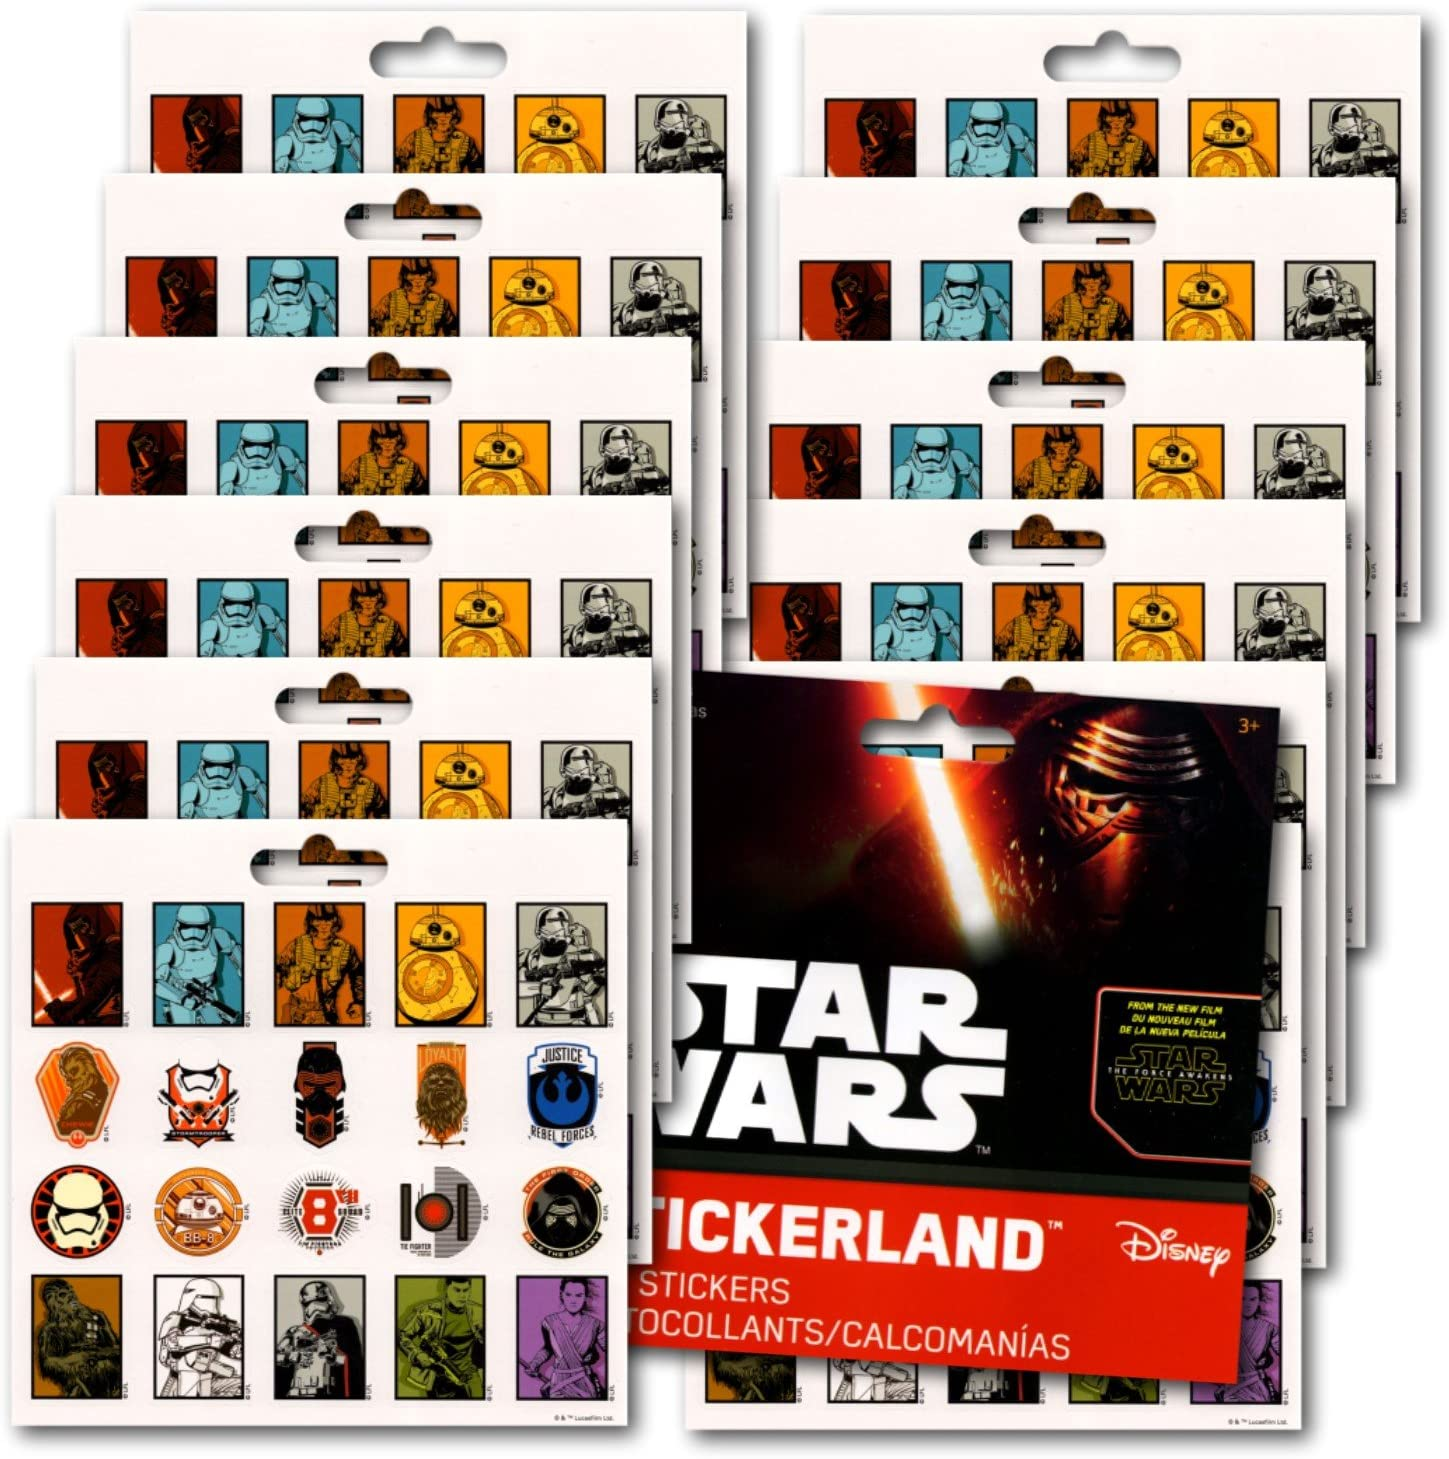 15 Star Wars The Last Jedi Movie Stickers Kid Party Goody Loot Bag Favor Supply